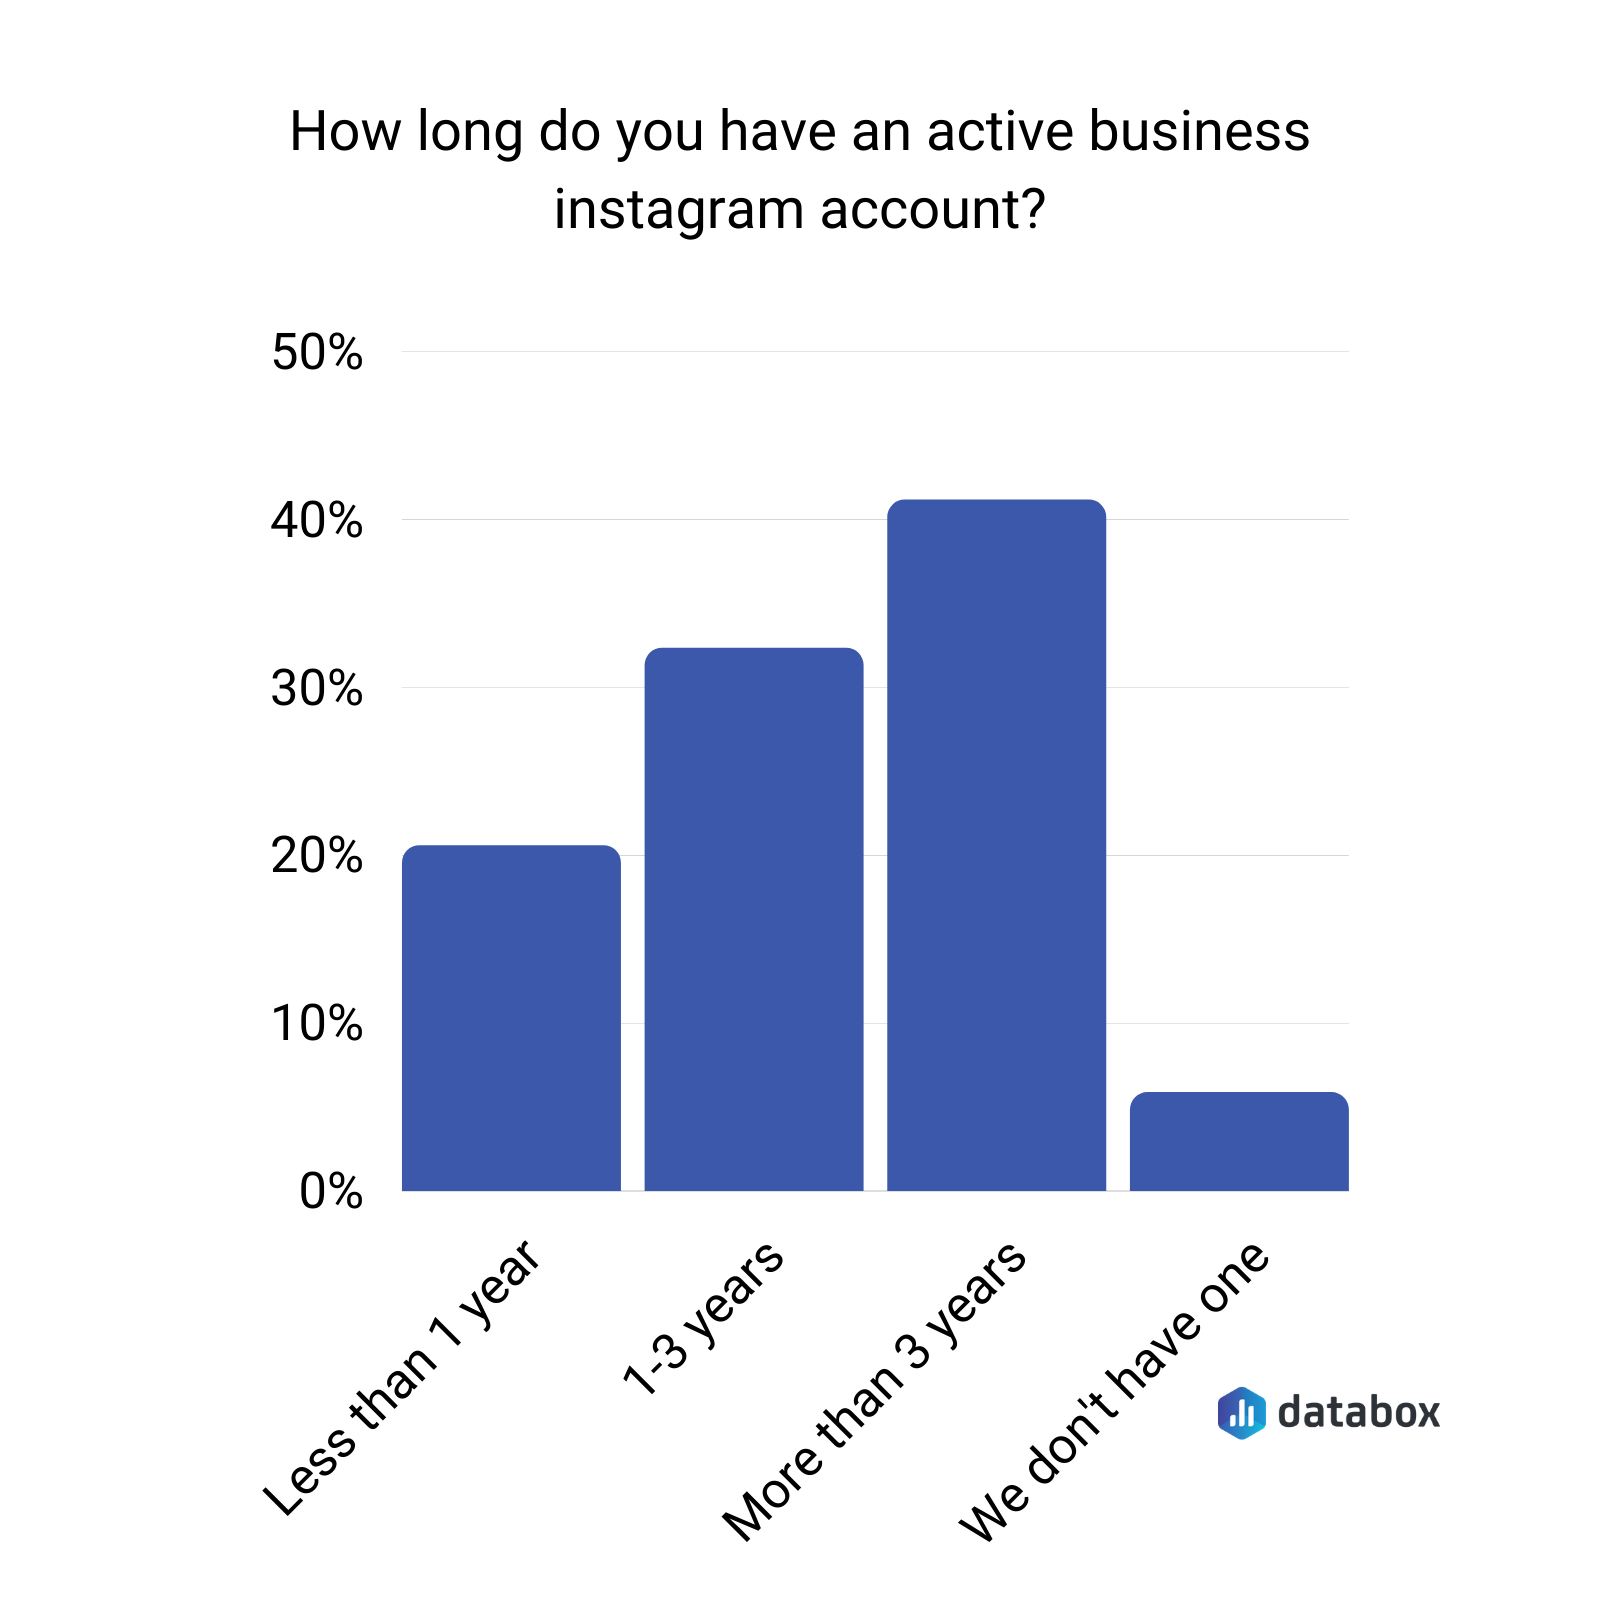 How long do you have an active business Instagram account?